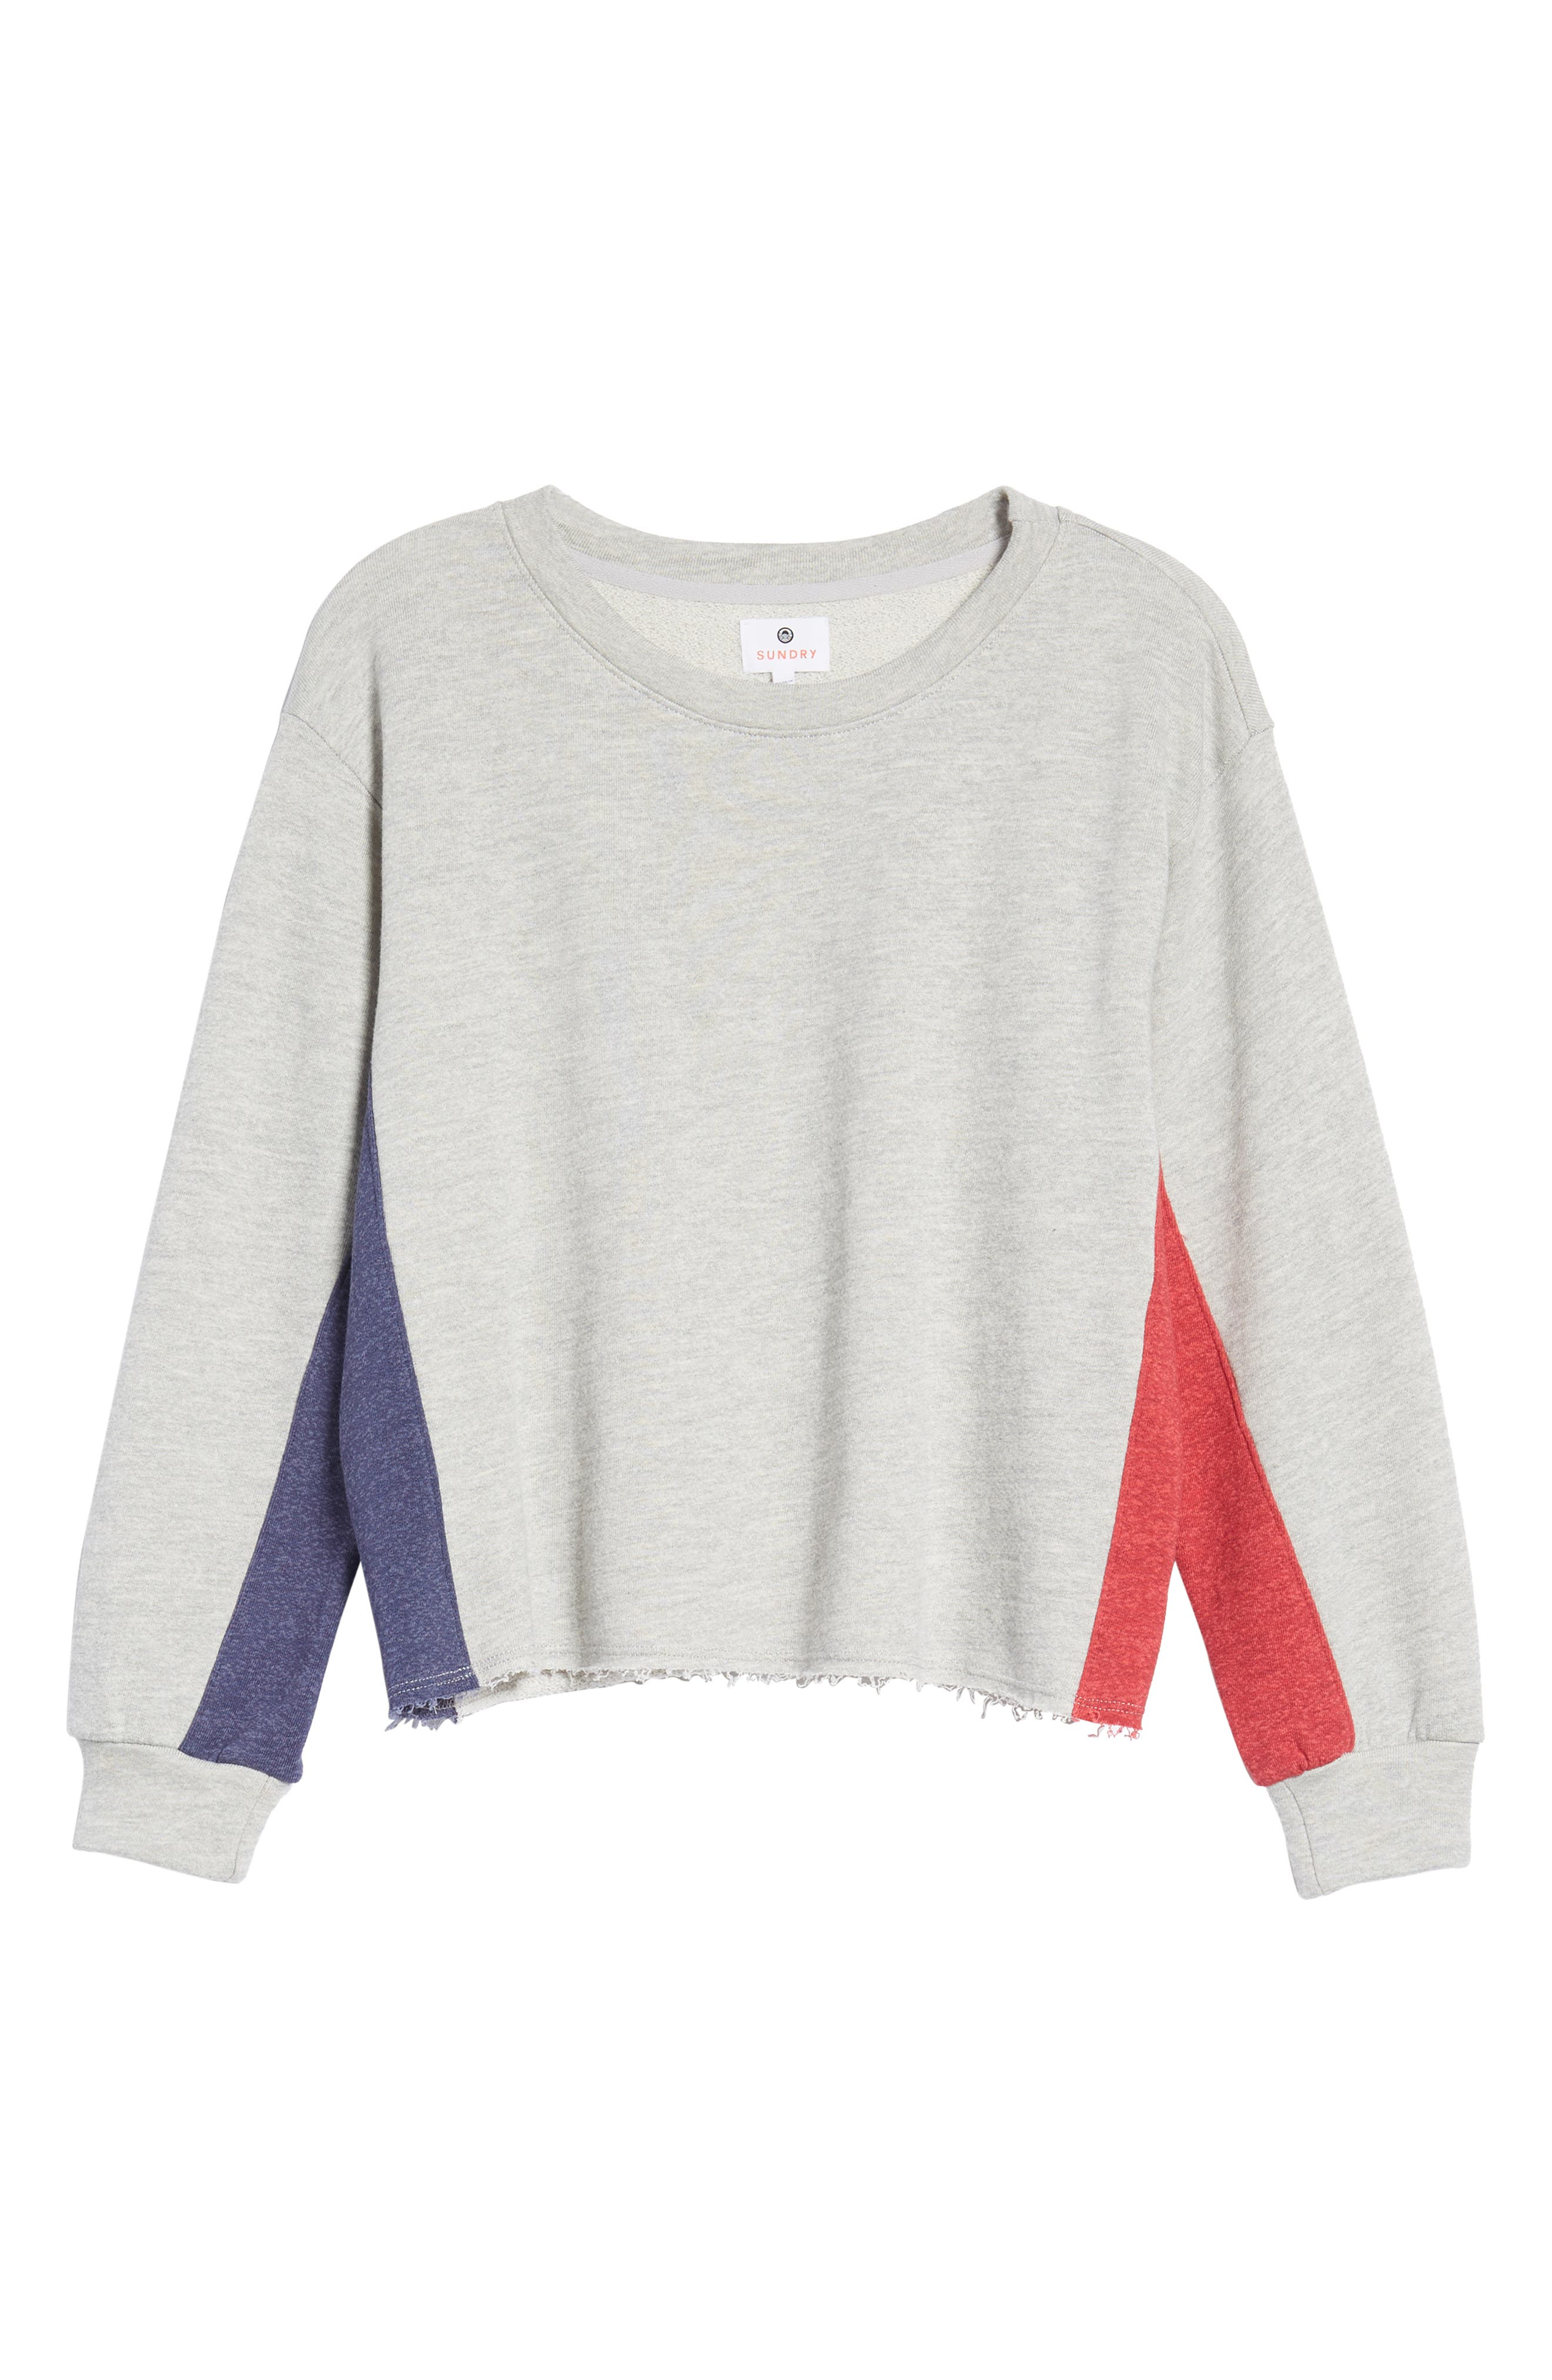 Colorblock Terry Sweatshirt,                             Alternate thumbnail 7, color,                             Heather Grey